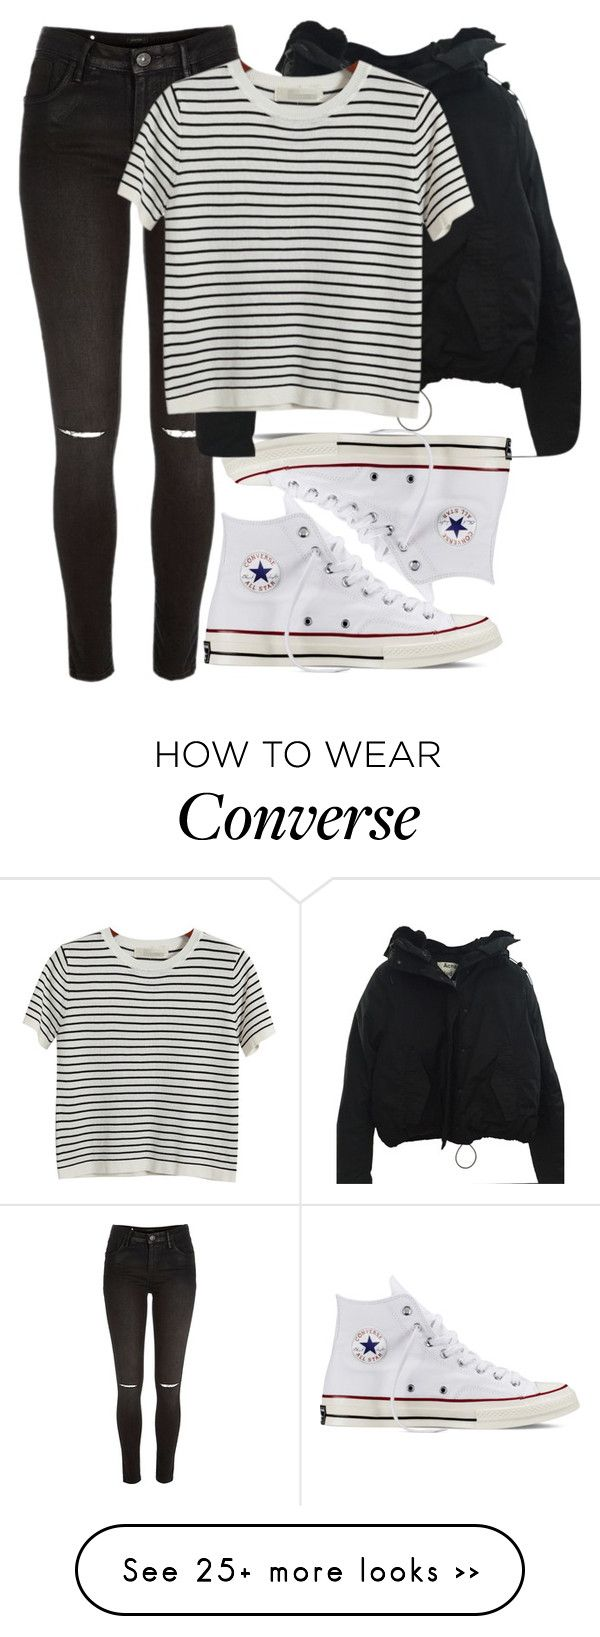 """Now we hearing mamma mia"" by fungirl1forlife on Polyvore featuring River Island, Converse, Acne Studios and Chicnova Fashion"